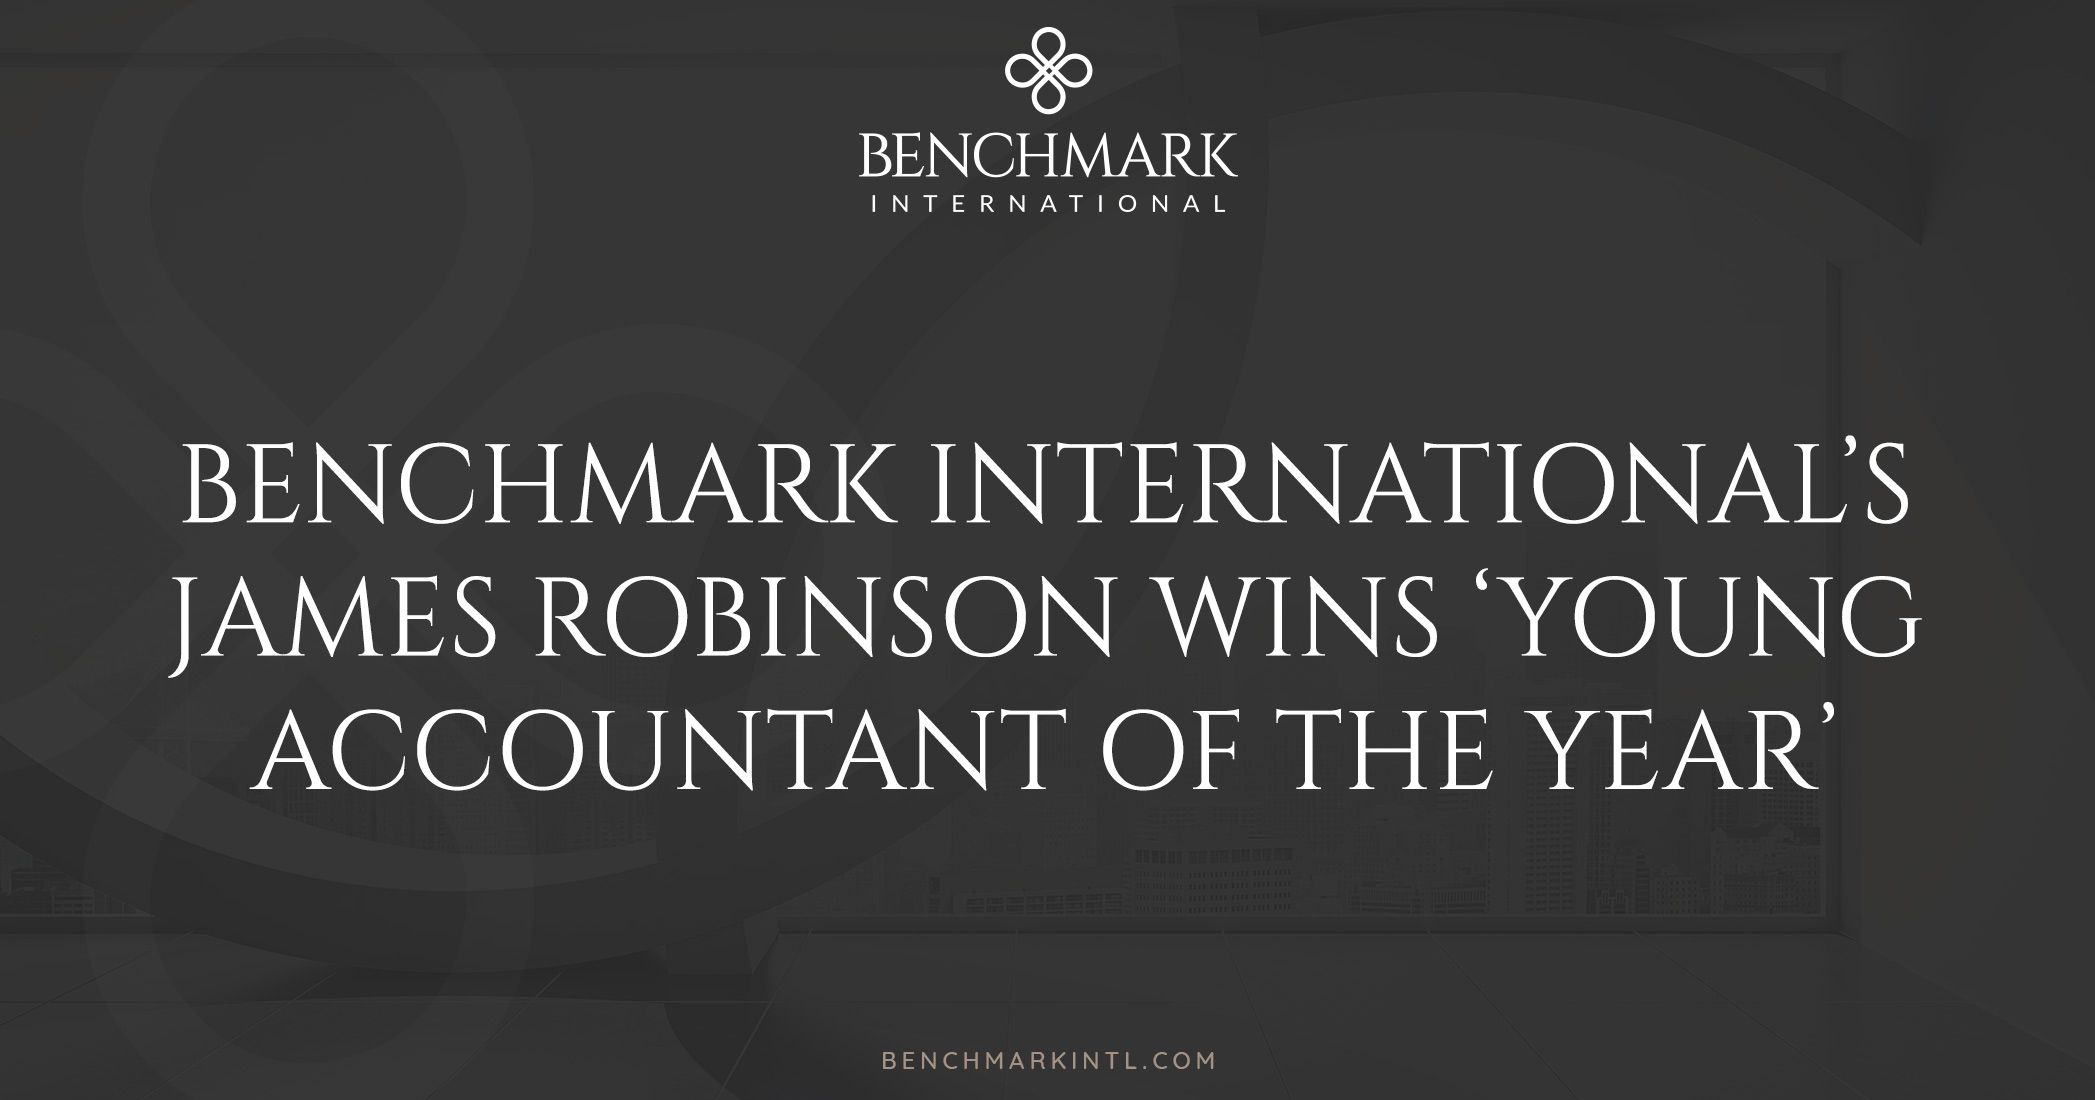 Benchmark International's James Robinson Wins 'Young Accountant of the Year'